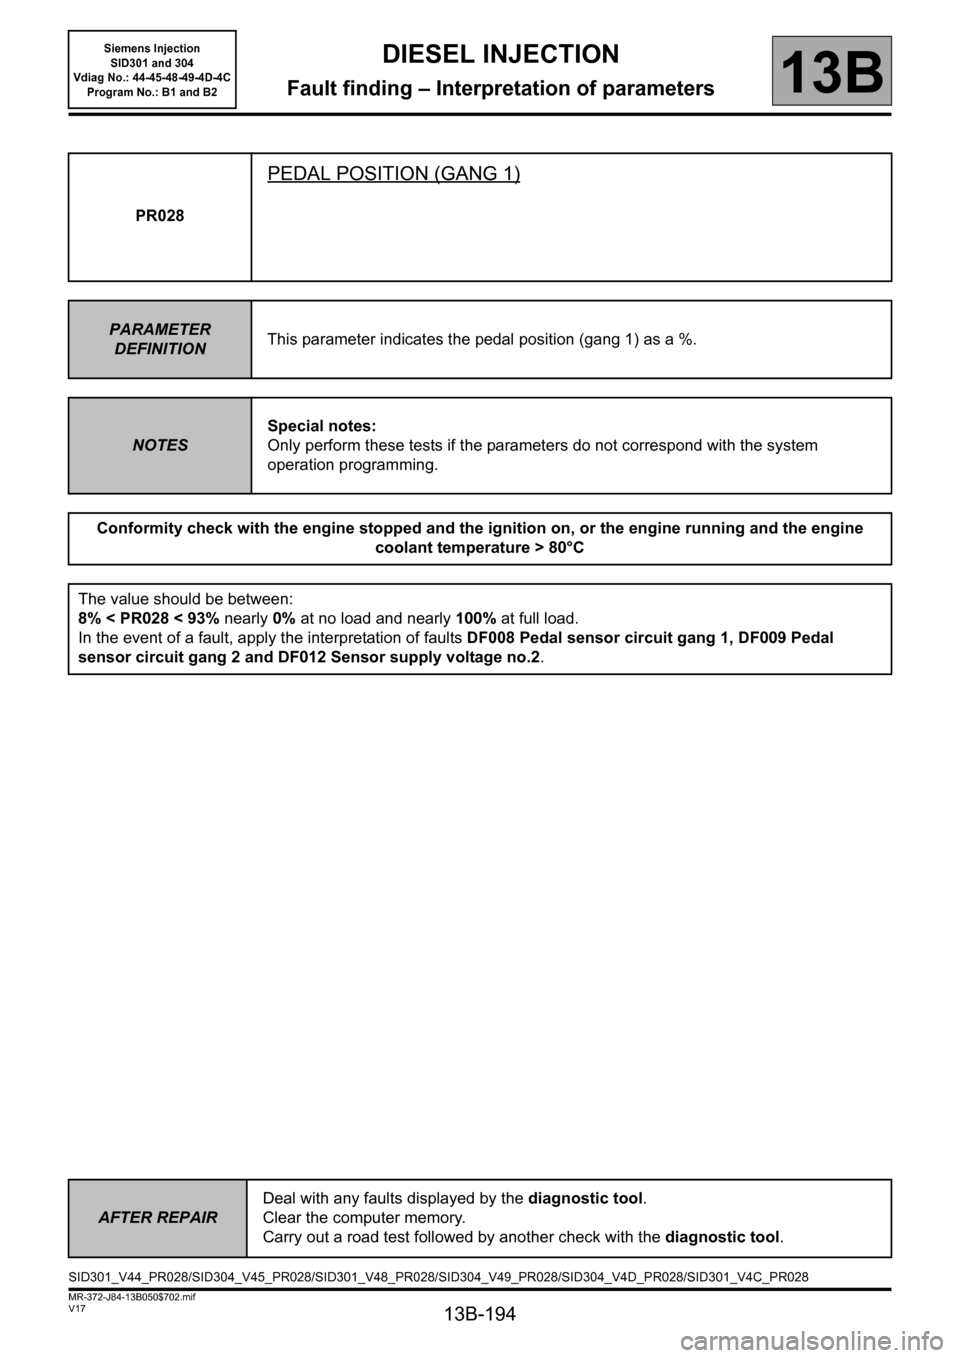 RENAULT SCENIC 2011 J95 / 3.G Engine And Peripherals Siemens Injection Workshop Manual, Page 194